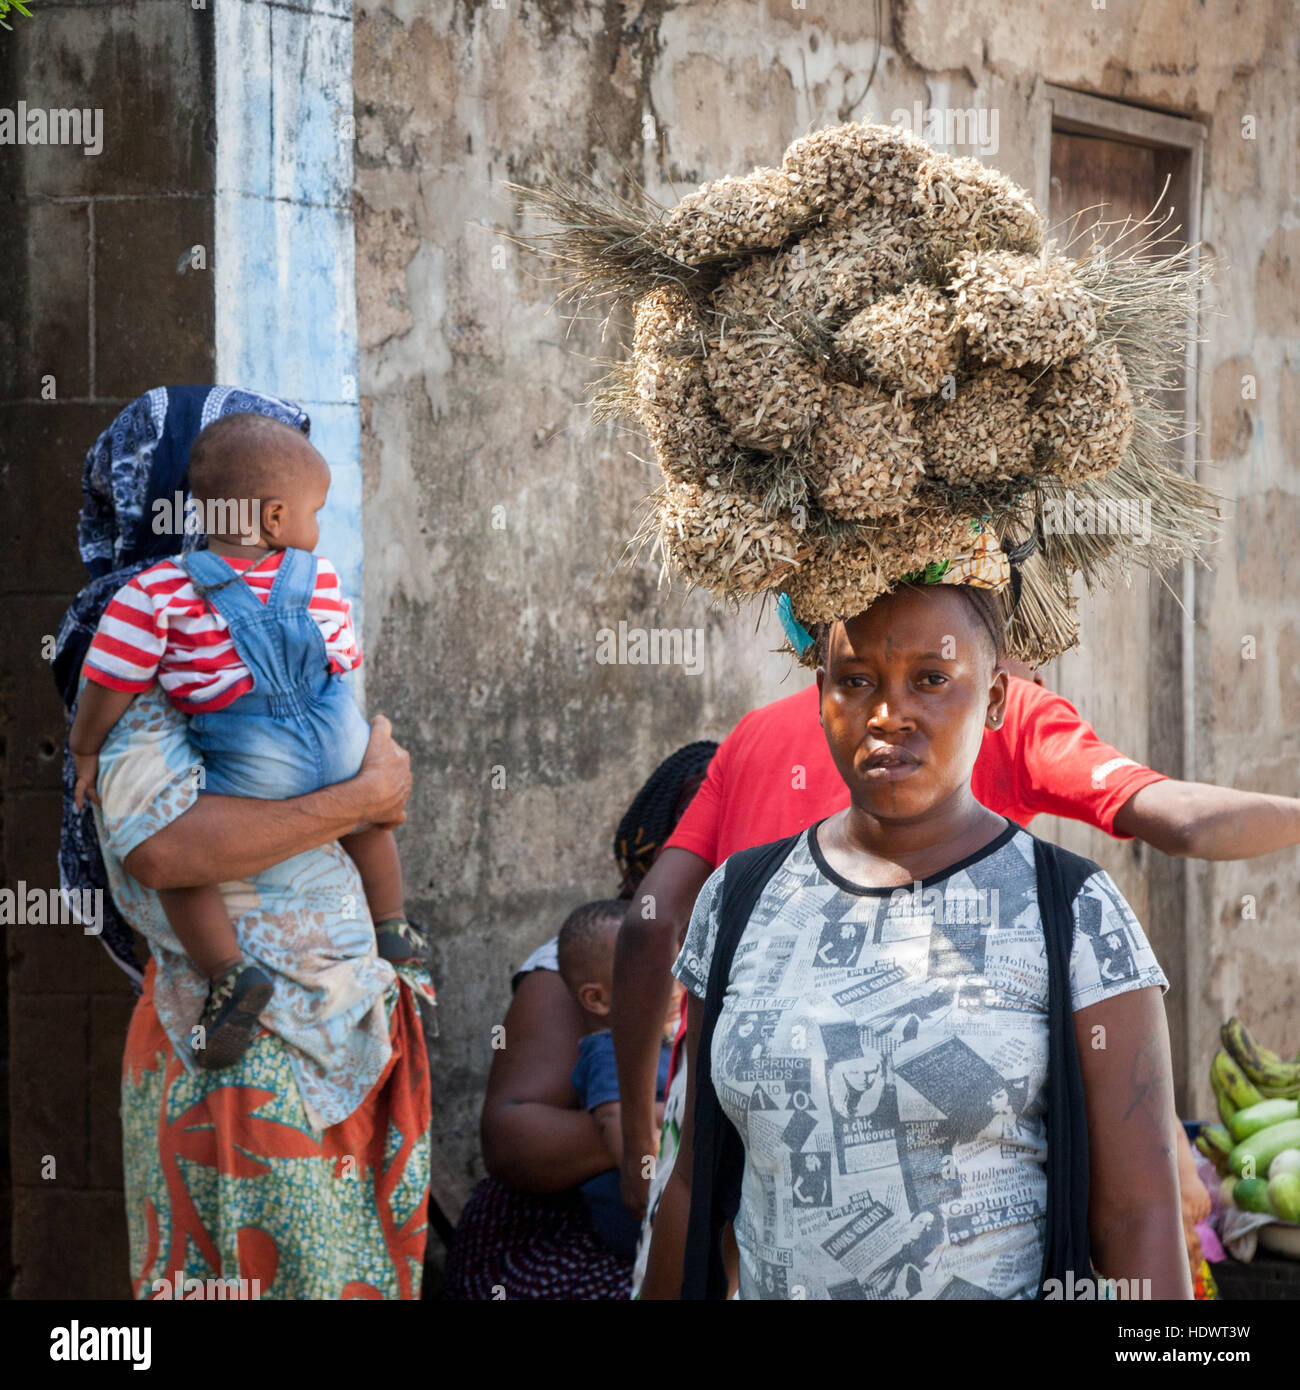 African woman carrying brooms on head Stock Photo